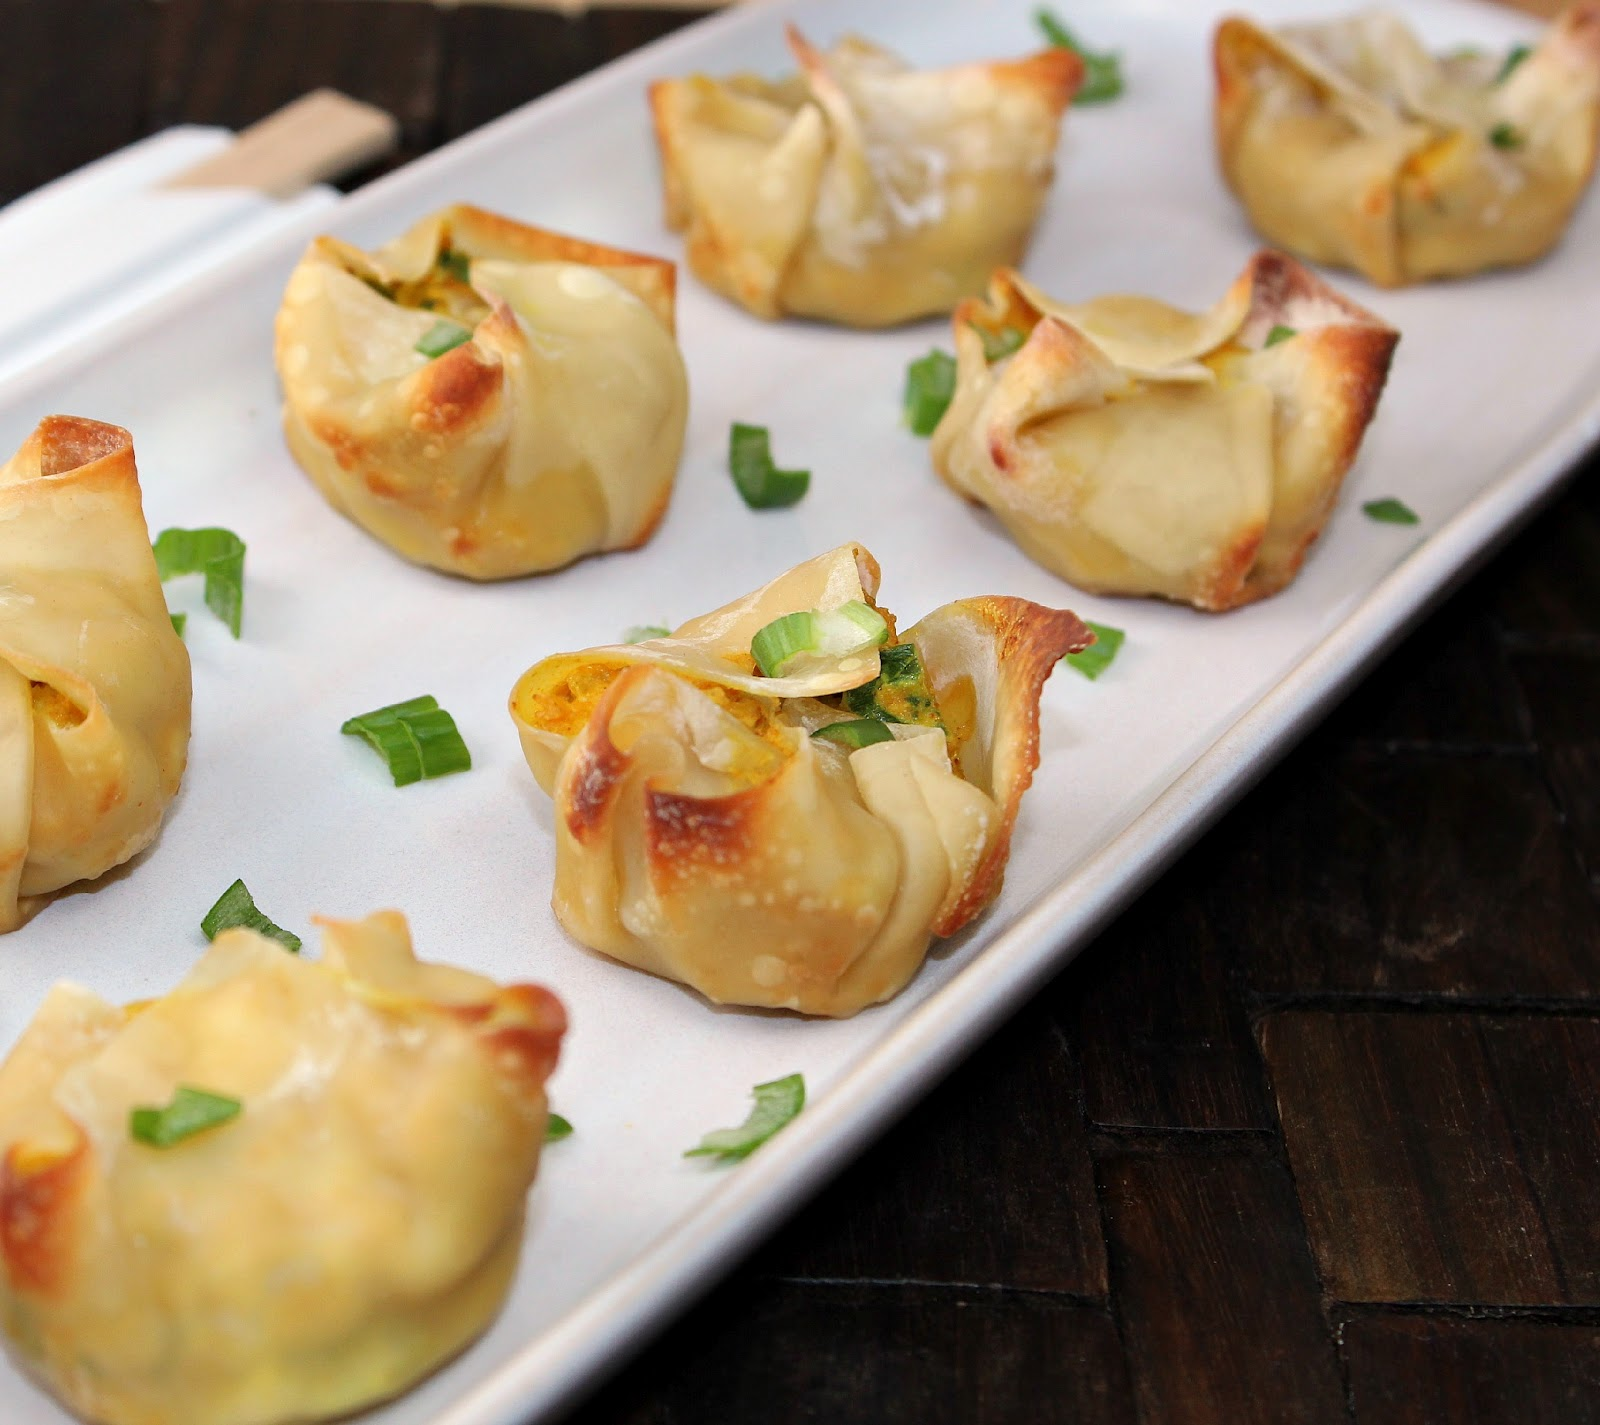 Takeout Makeover: Crab Rangoon | Generation Y Foodie